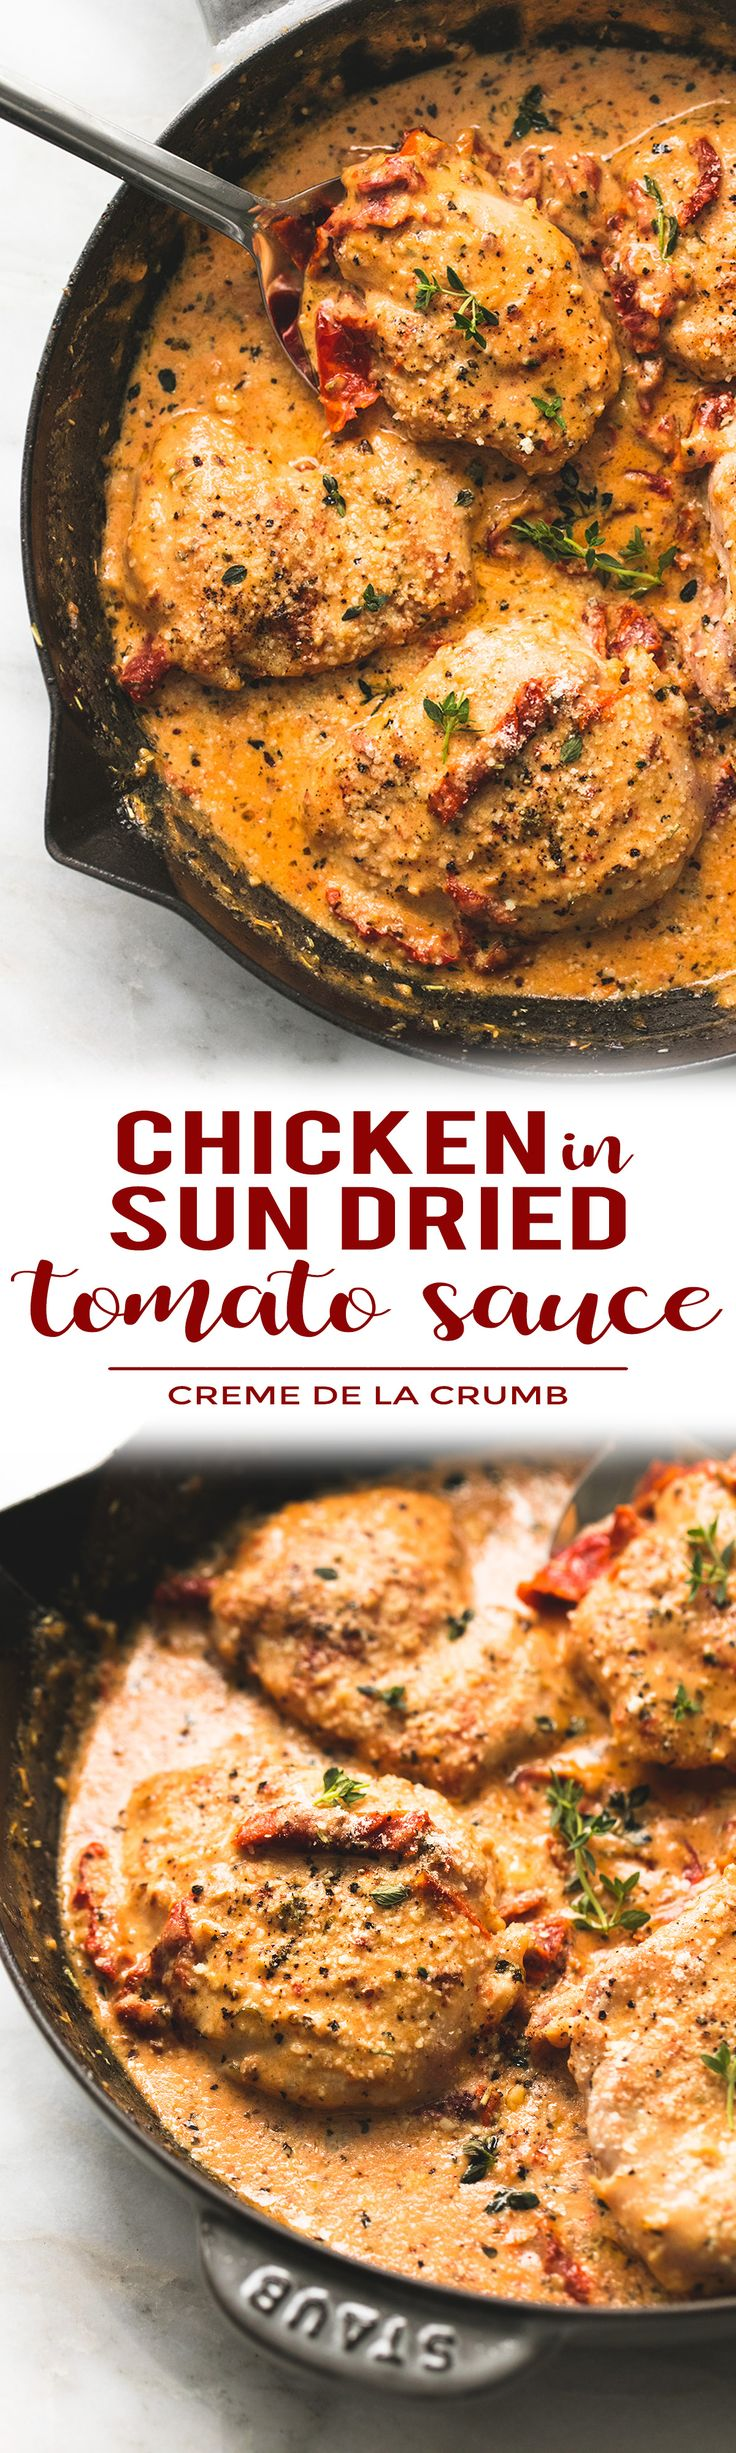 Delicious and pretty. Good for company.    30 Minute Skillet Chicken in Creamy Sun Dried Tomato Sauce with parmesan, garlic, and fresh herbs. | lecremedelacrumb.com